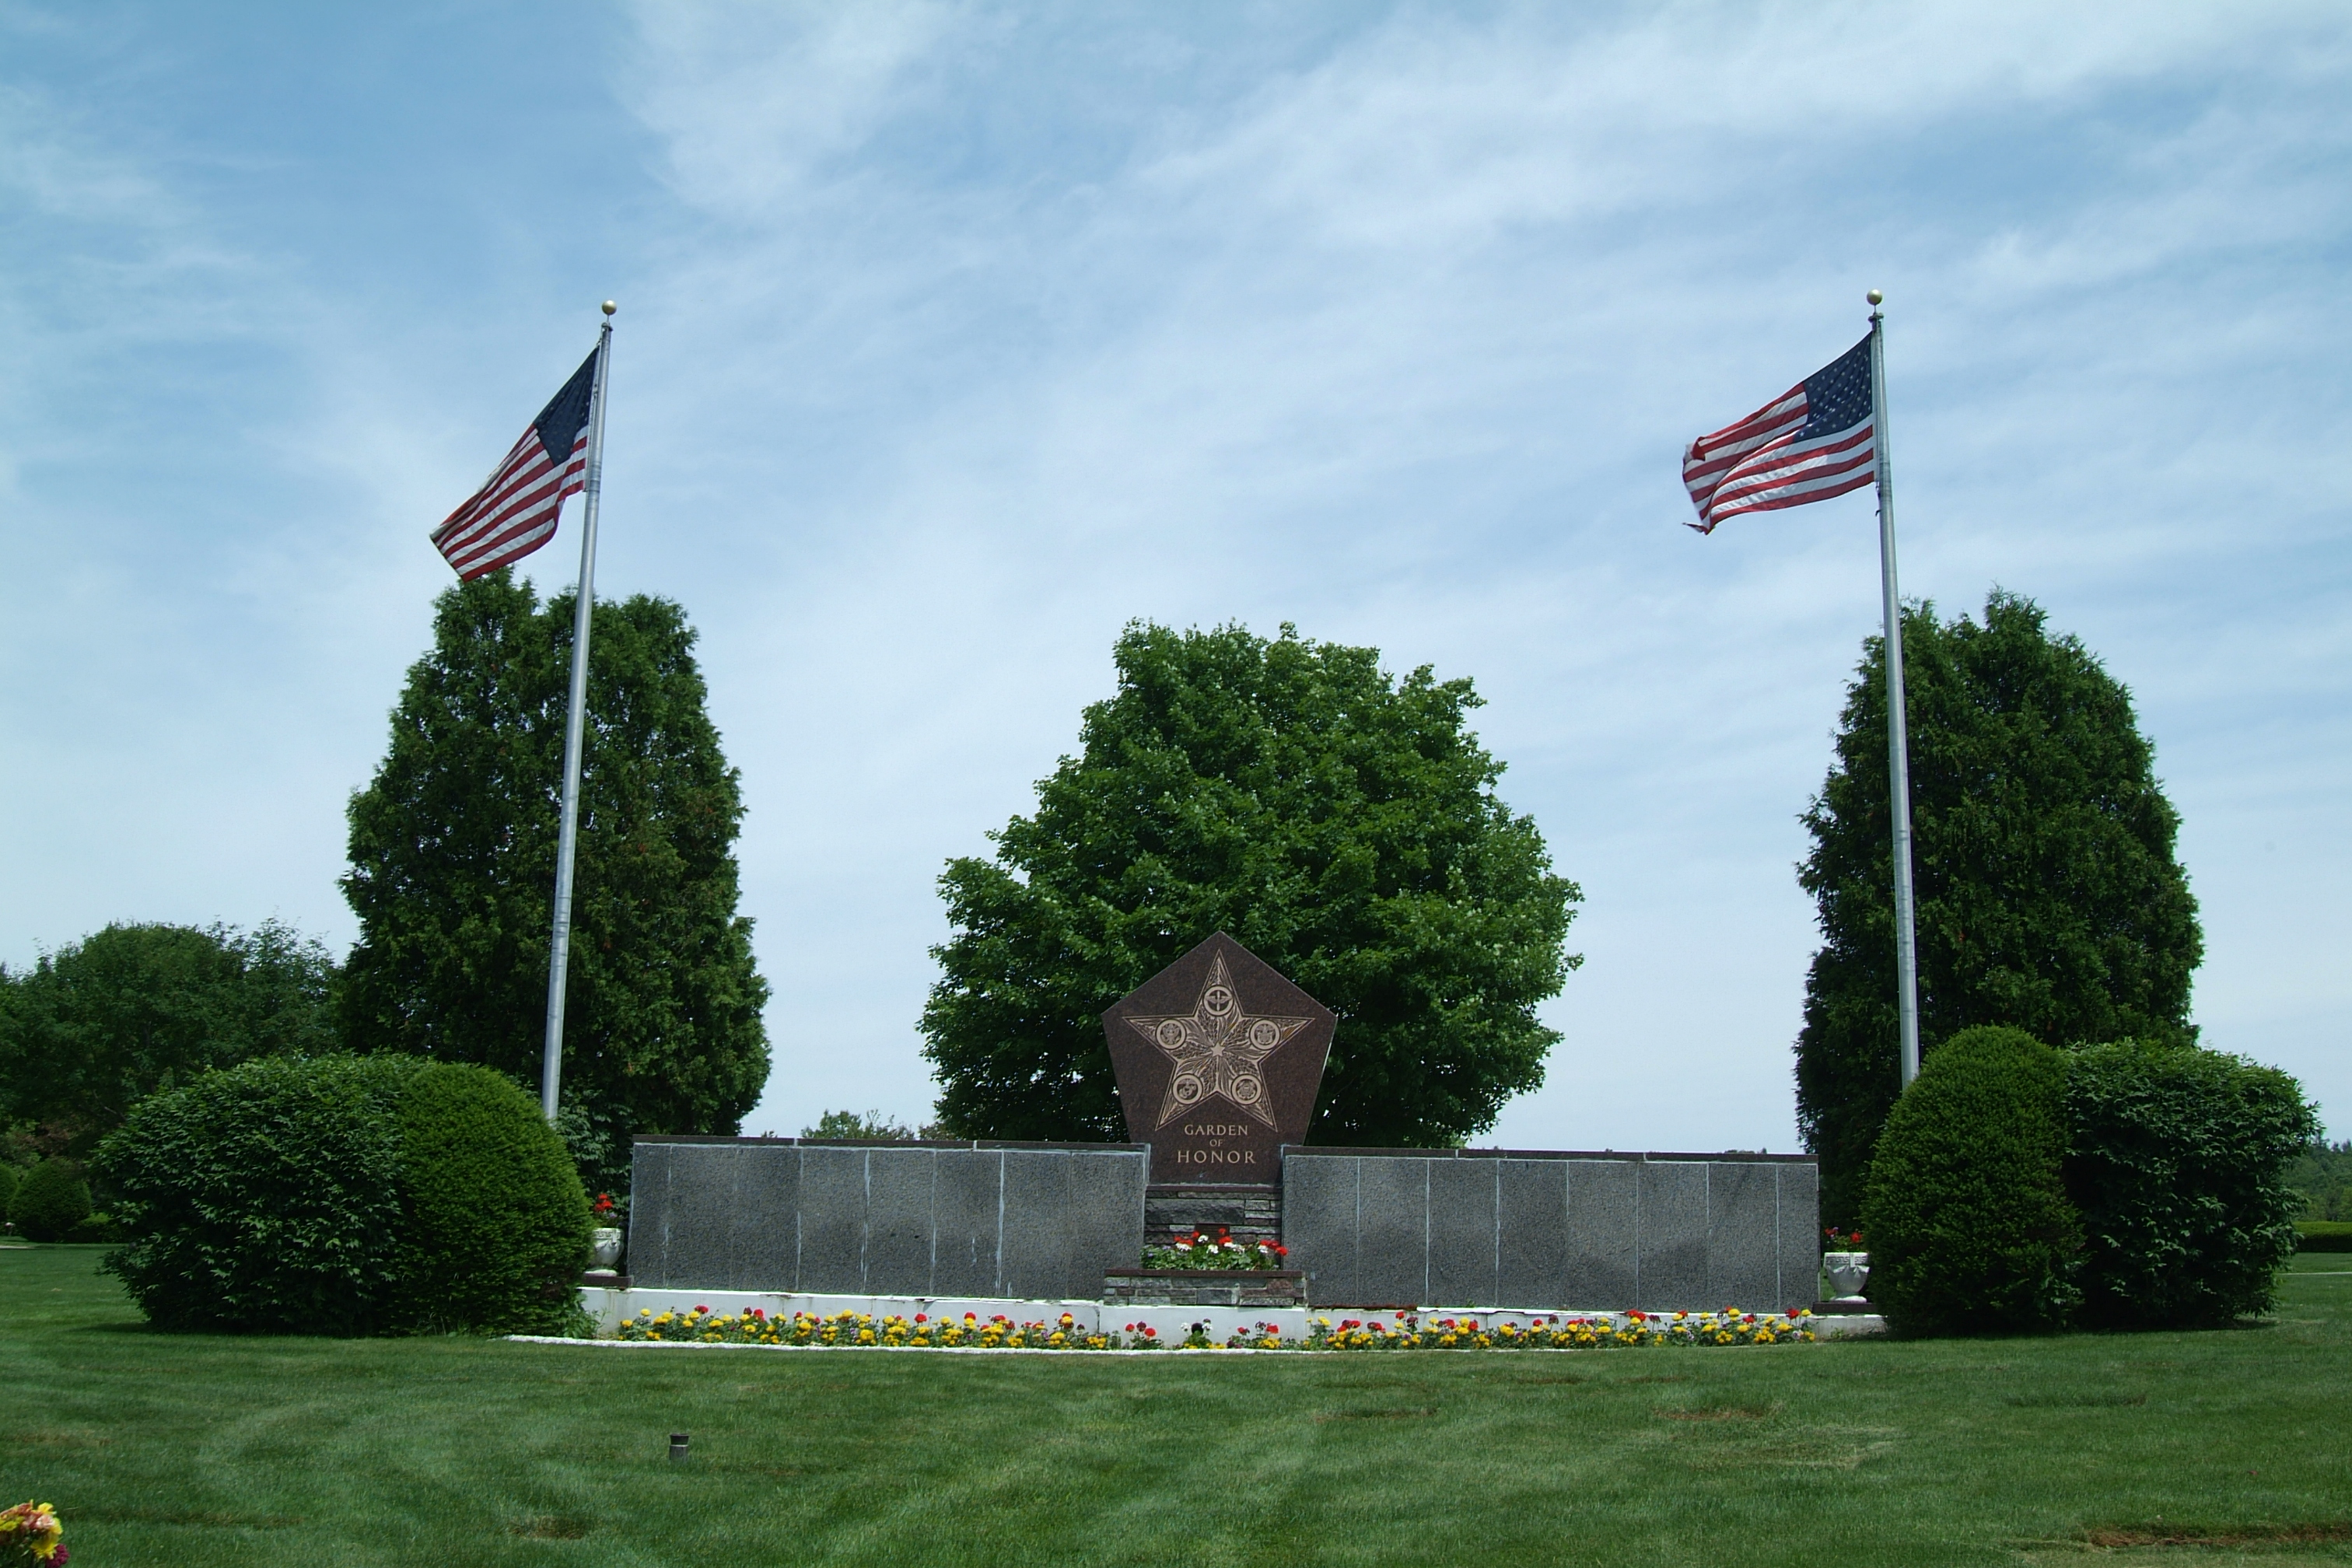 Garden of Honor